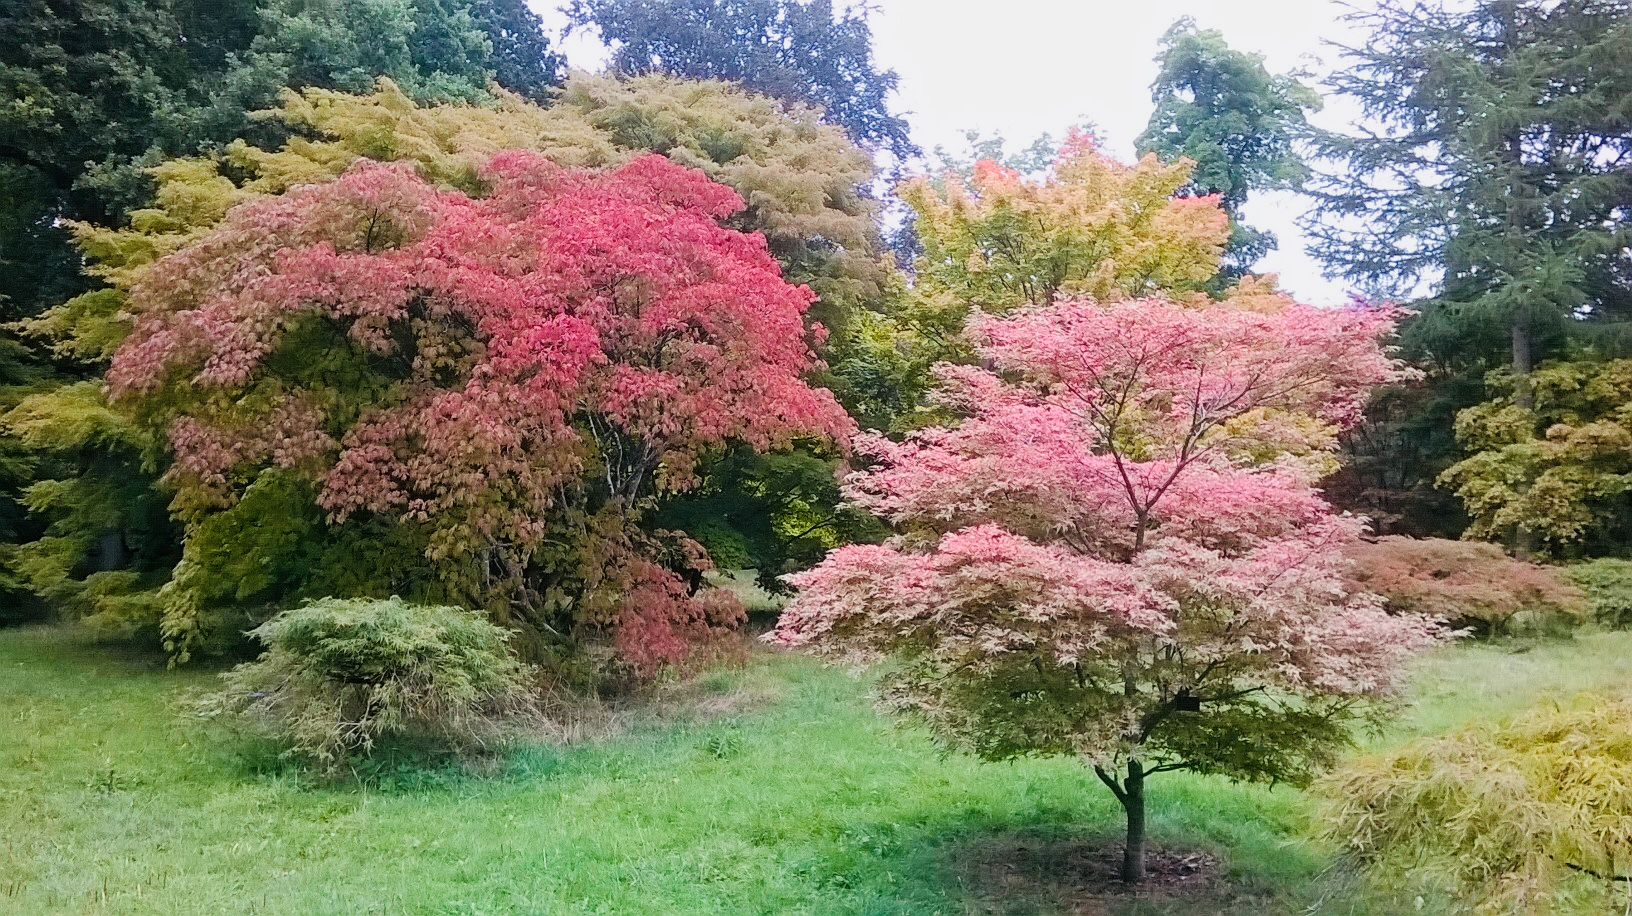 Westonbirt Arboretum. Acer trees in their summer foliage at Westonbirt Arboretum